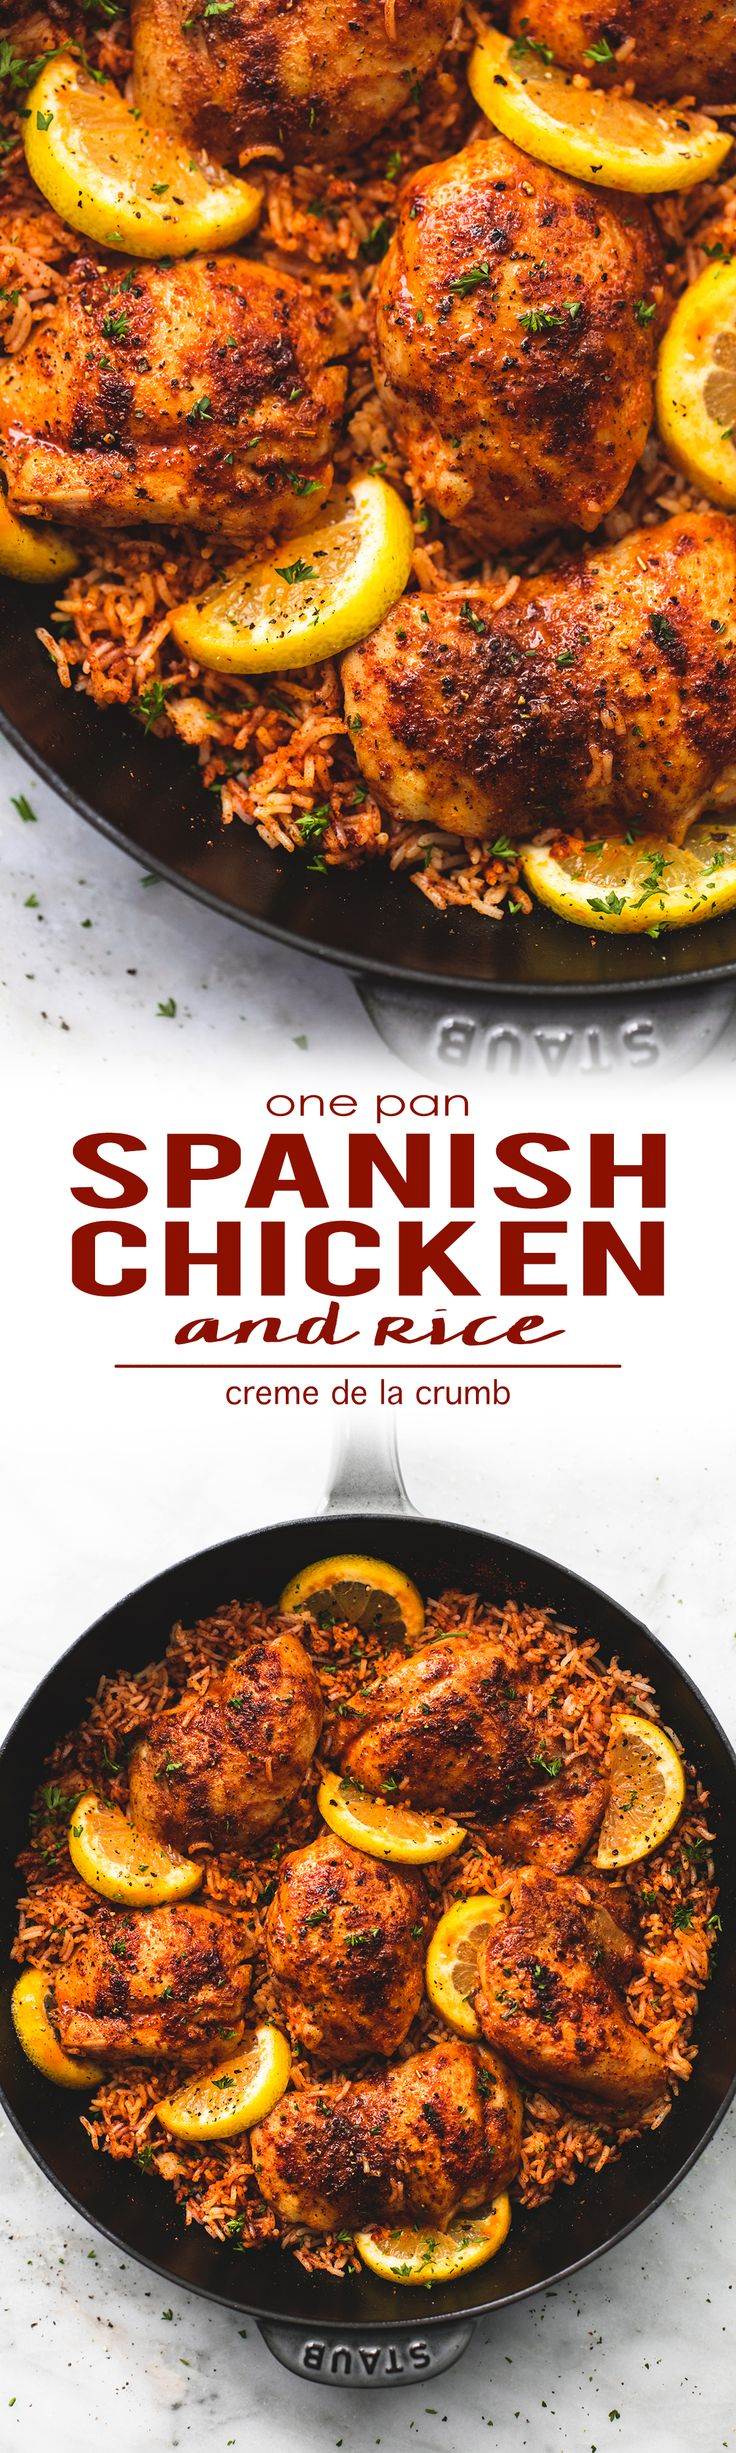 Easy and healthy One Pan Spanish Chicken and Rice 30 minute meal